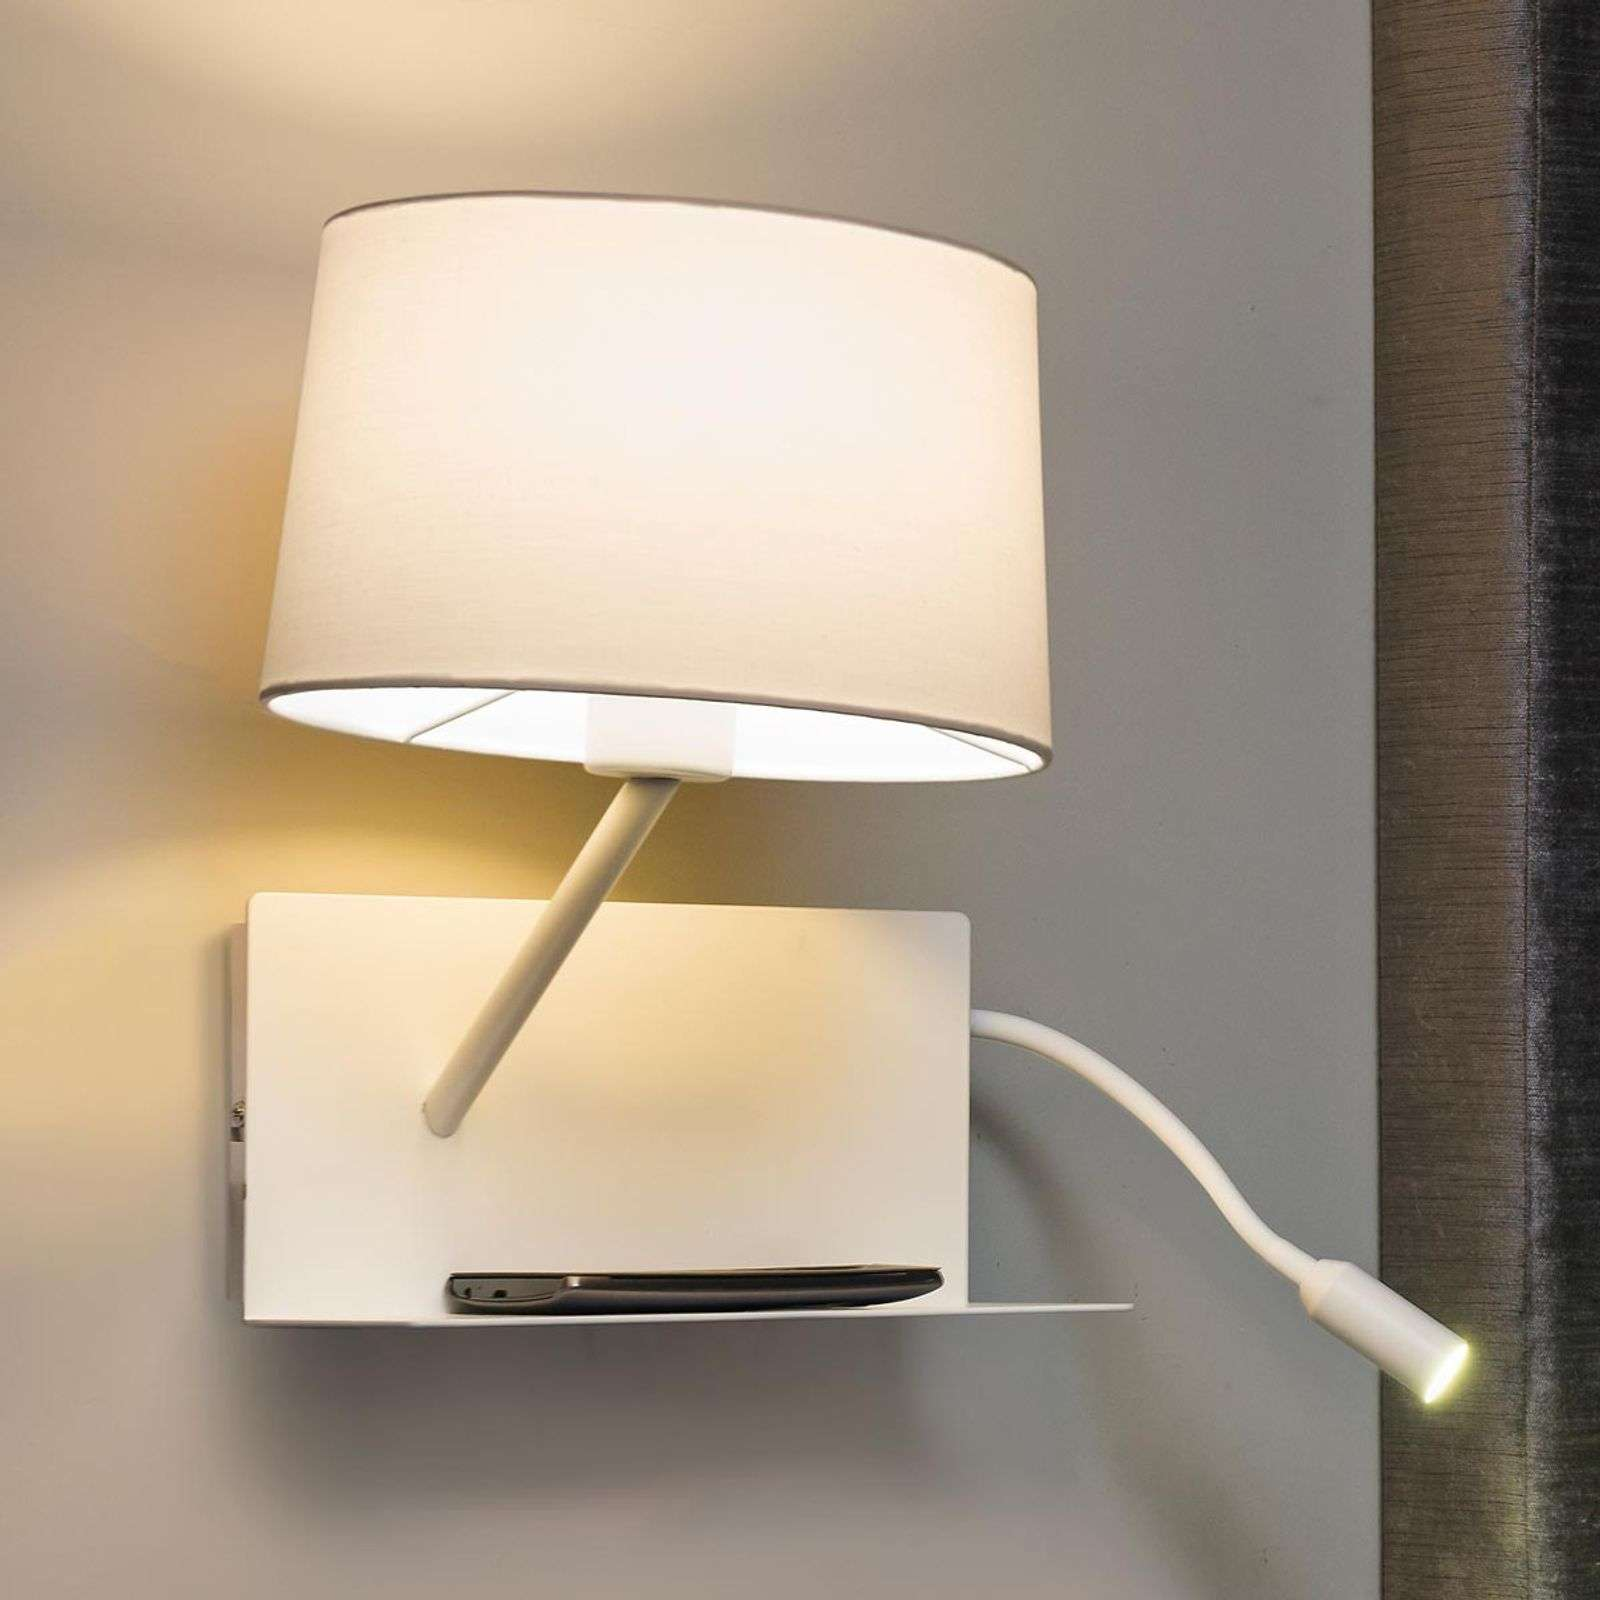 Aplique de pared Handy con brazo de la lectura LED